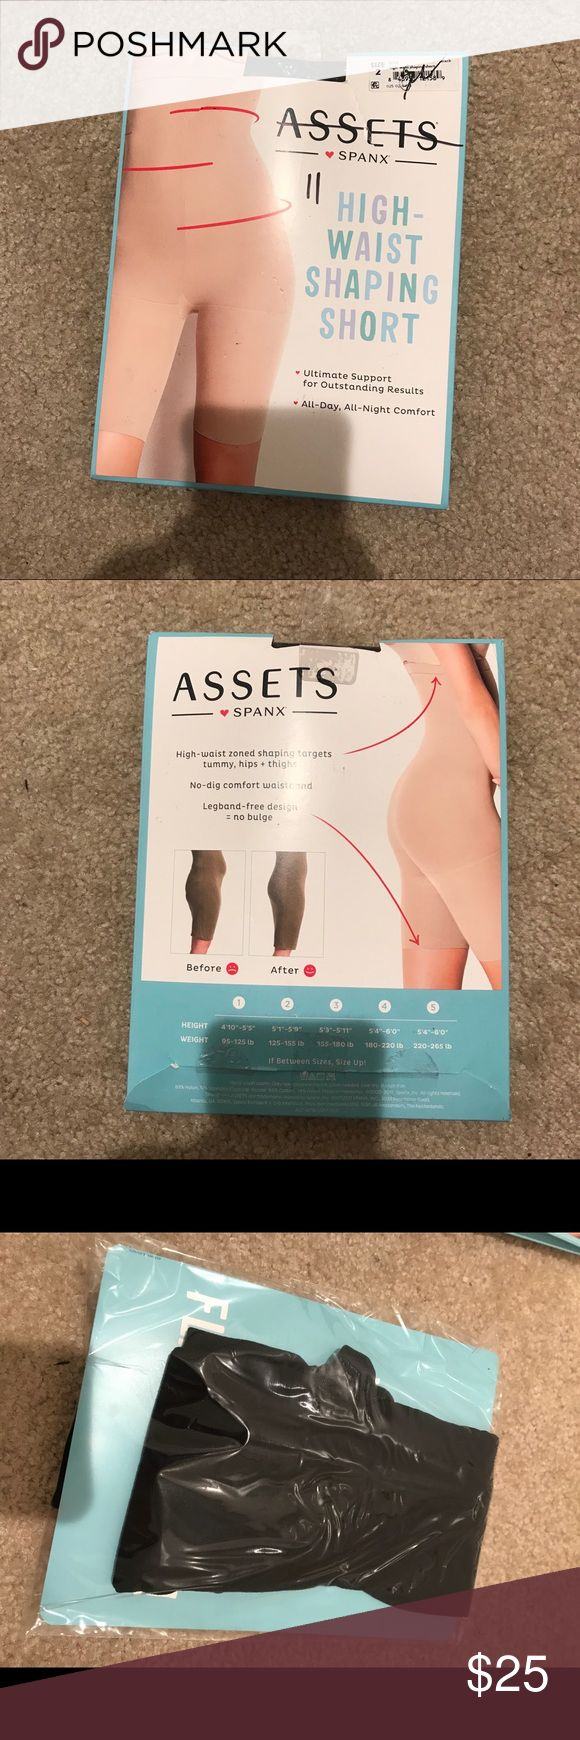 Assets Spanx High Waist Shaping Short Black 2 Black. Size 2 which says it's for 5'1 to 5'9 125-155 lbs.  Tight fit to hold everything in. I took them out to try on and they seem like they'd even be tight for me and I'm 110lbs 5'4. I'm sure I could get them on but I don't need them anymore so I didn't try. Just to give you an idea how tight they should be though if you want to size up for comfort vs holding in more. New, a little wear to the box. Assets By Spanx Intimates & Sleepwear…